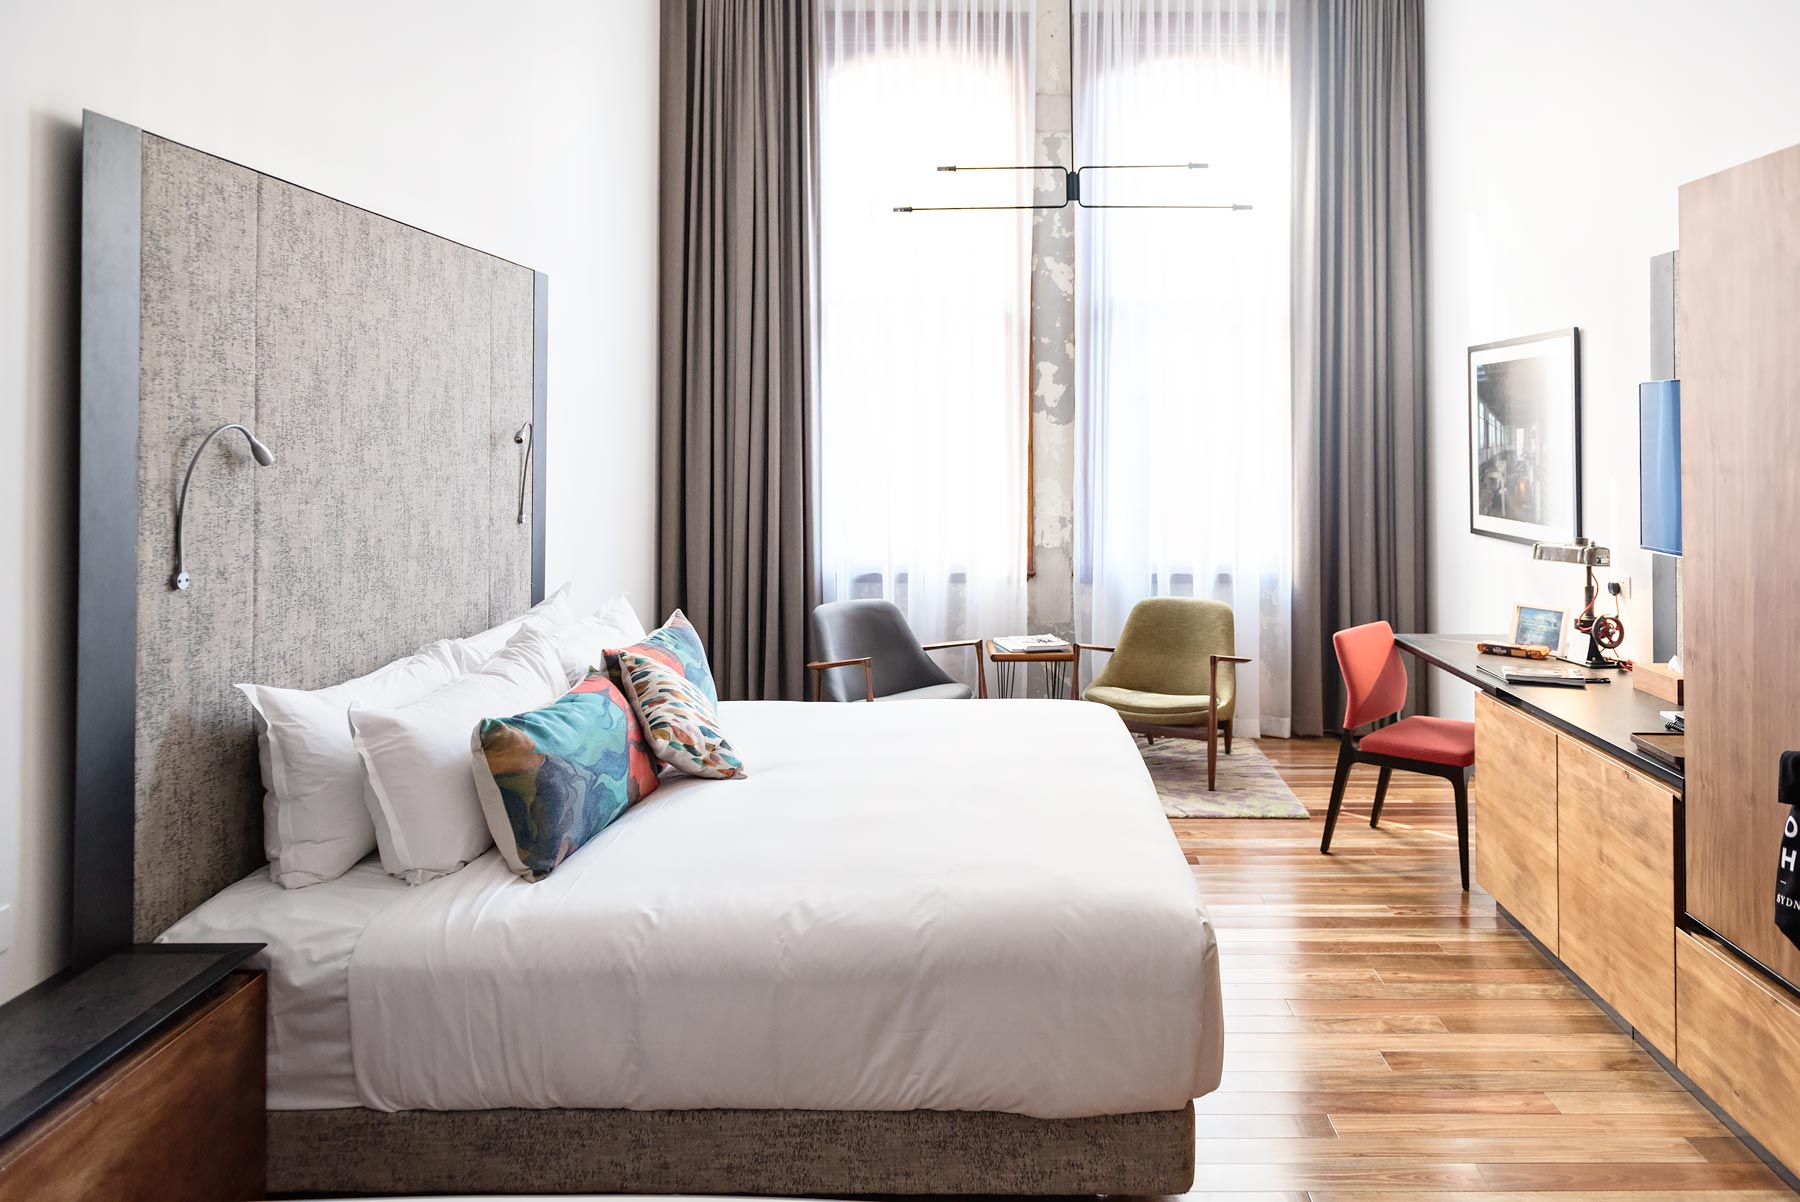 Tricks To Turn Your Bedroom Into Your Favourite Boutique Hotel - Design my bedroom like a hotel room